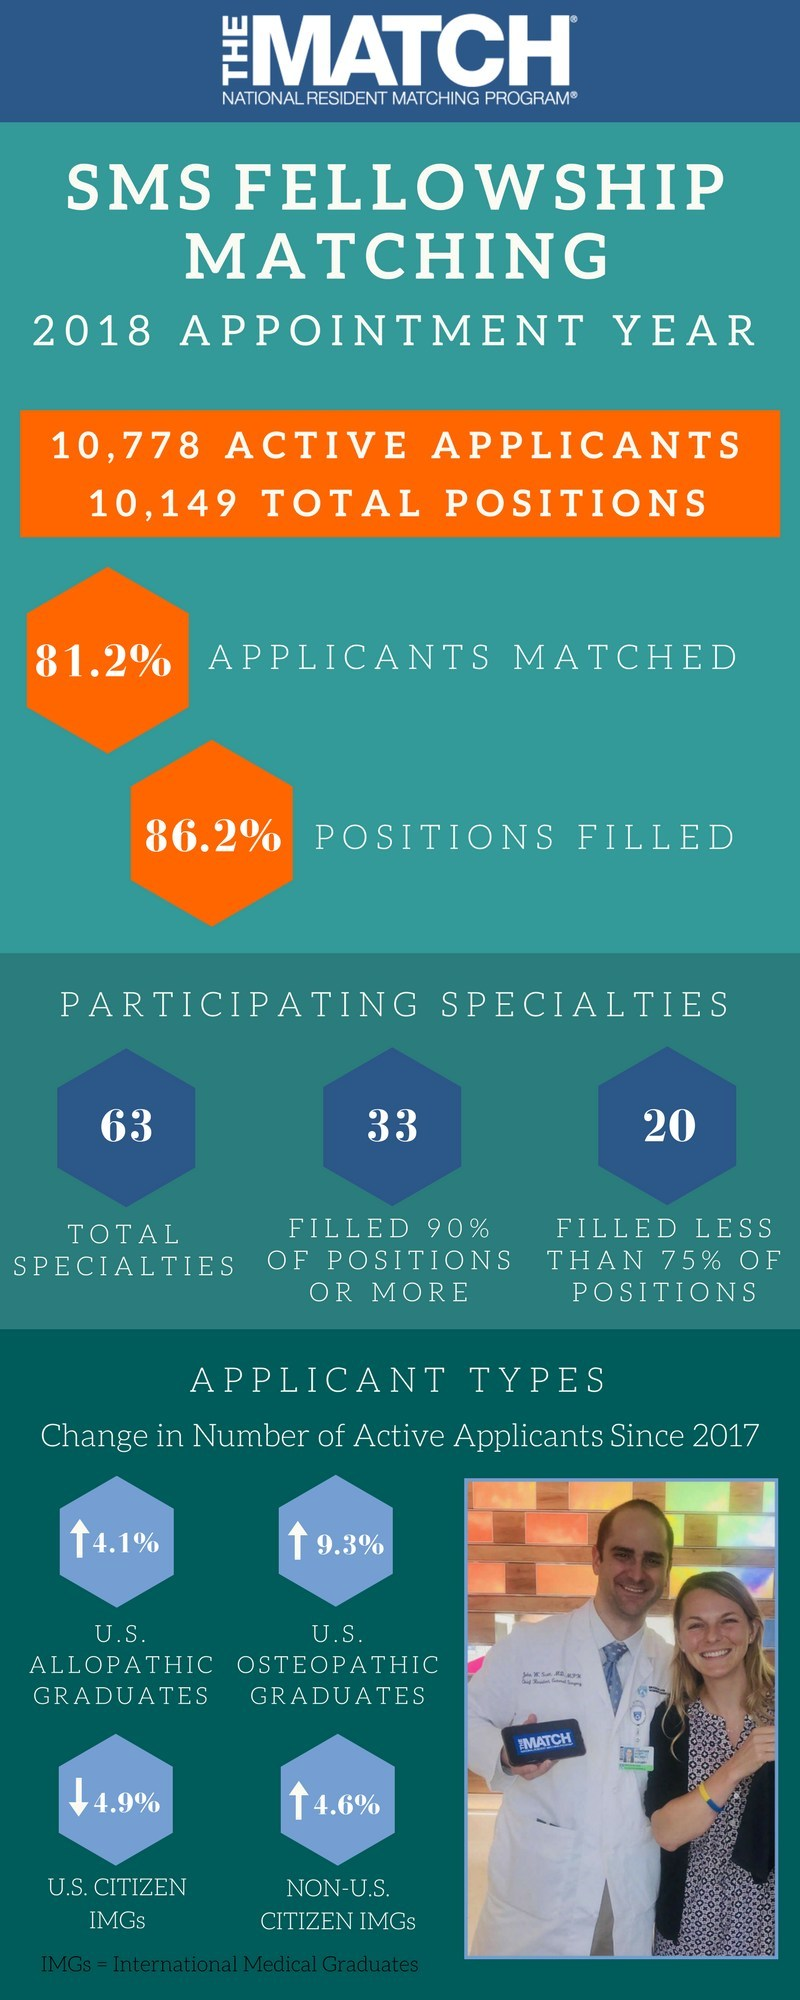 NRMP Report Shows 2018 Appointment Year Fellowship Matches